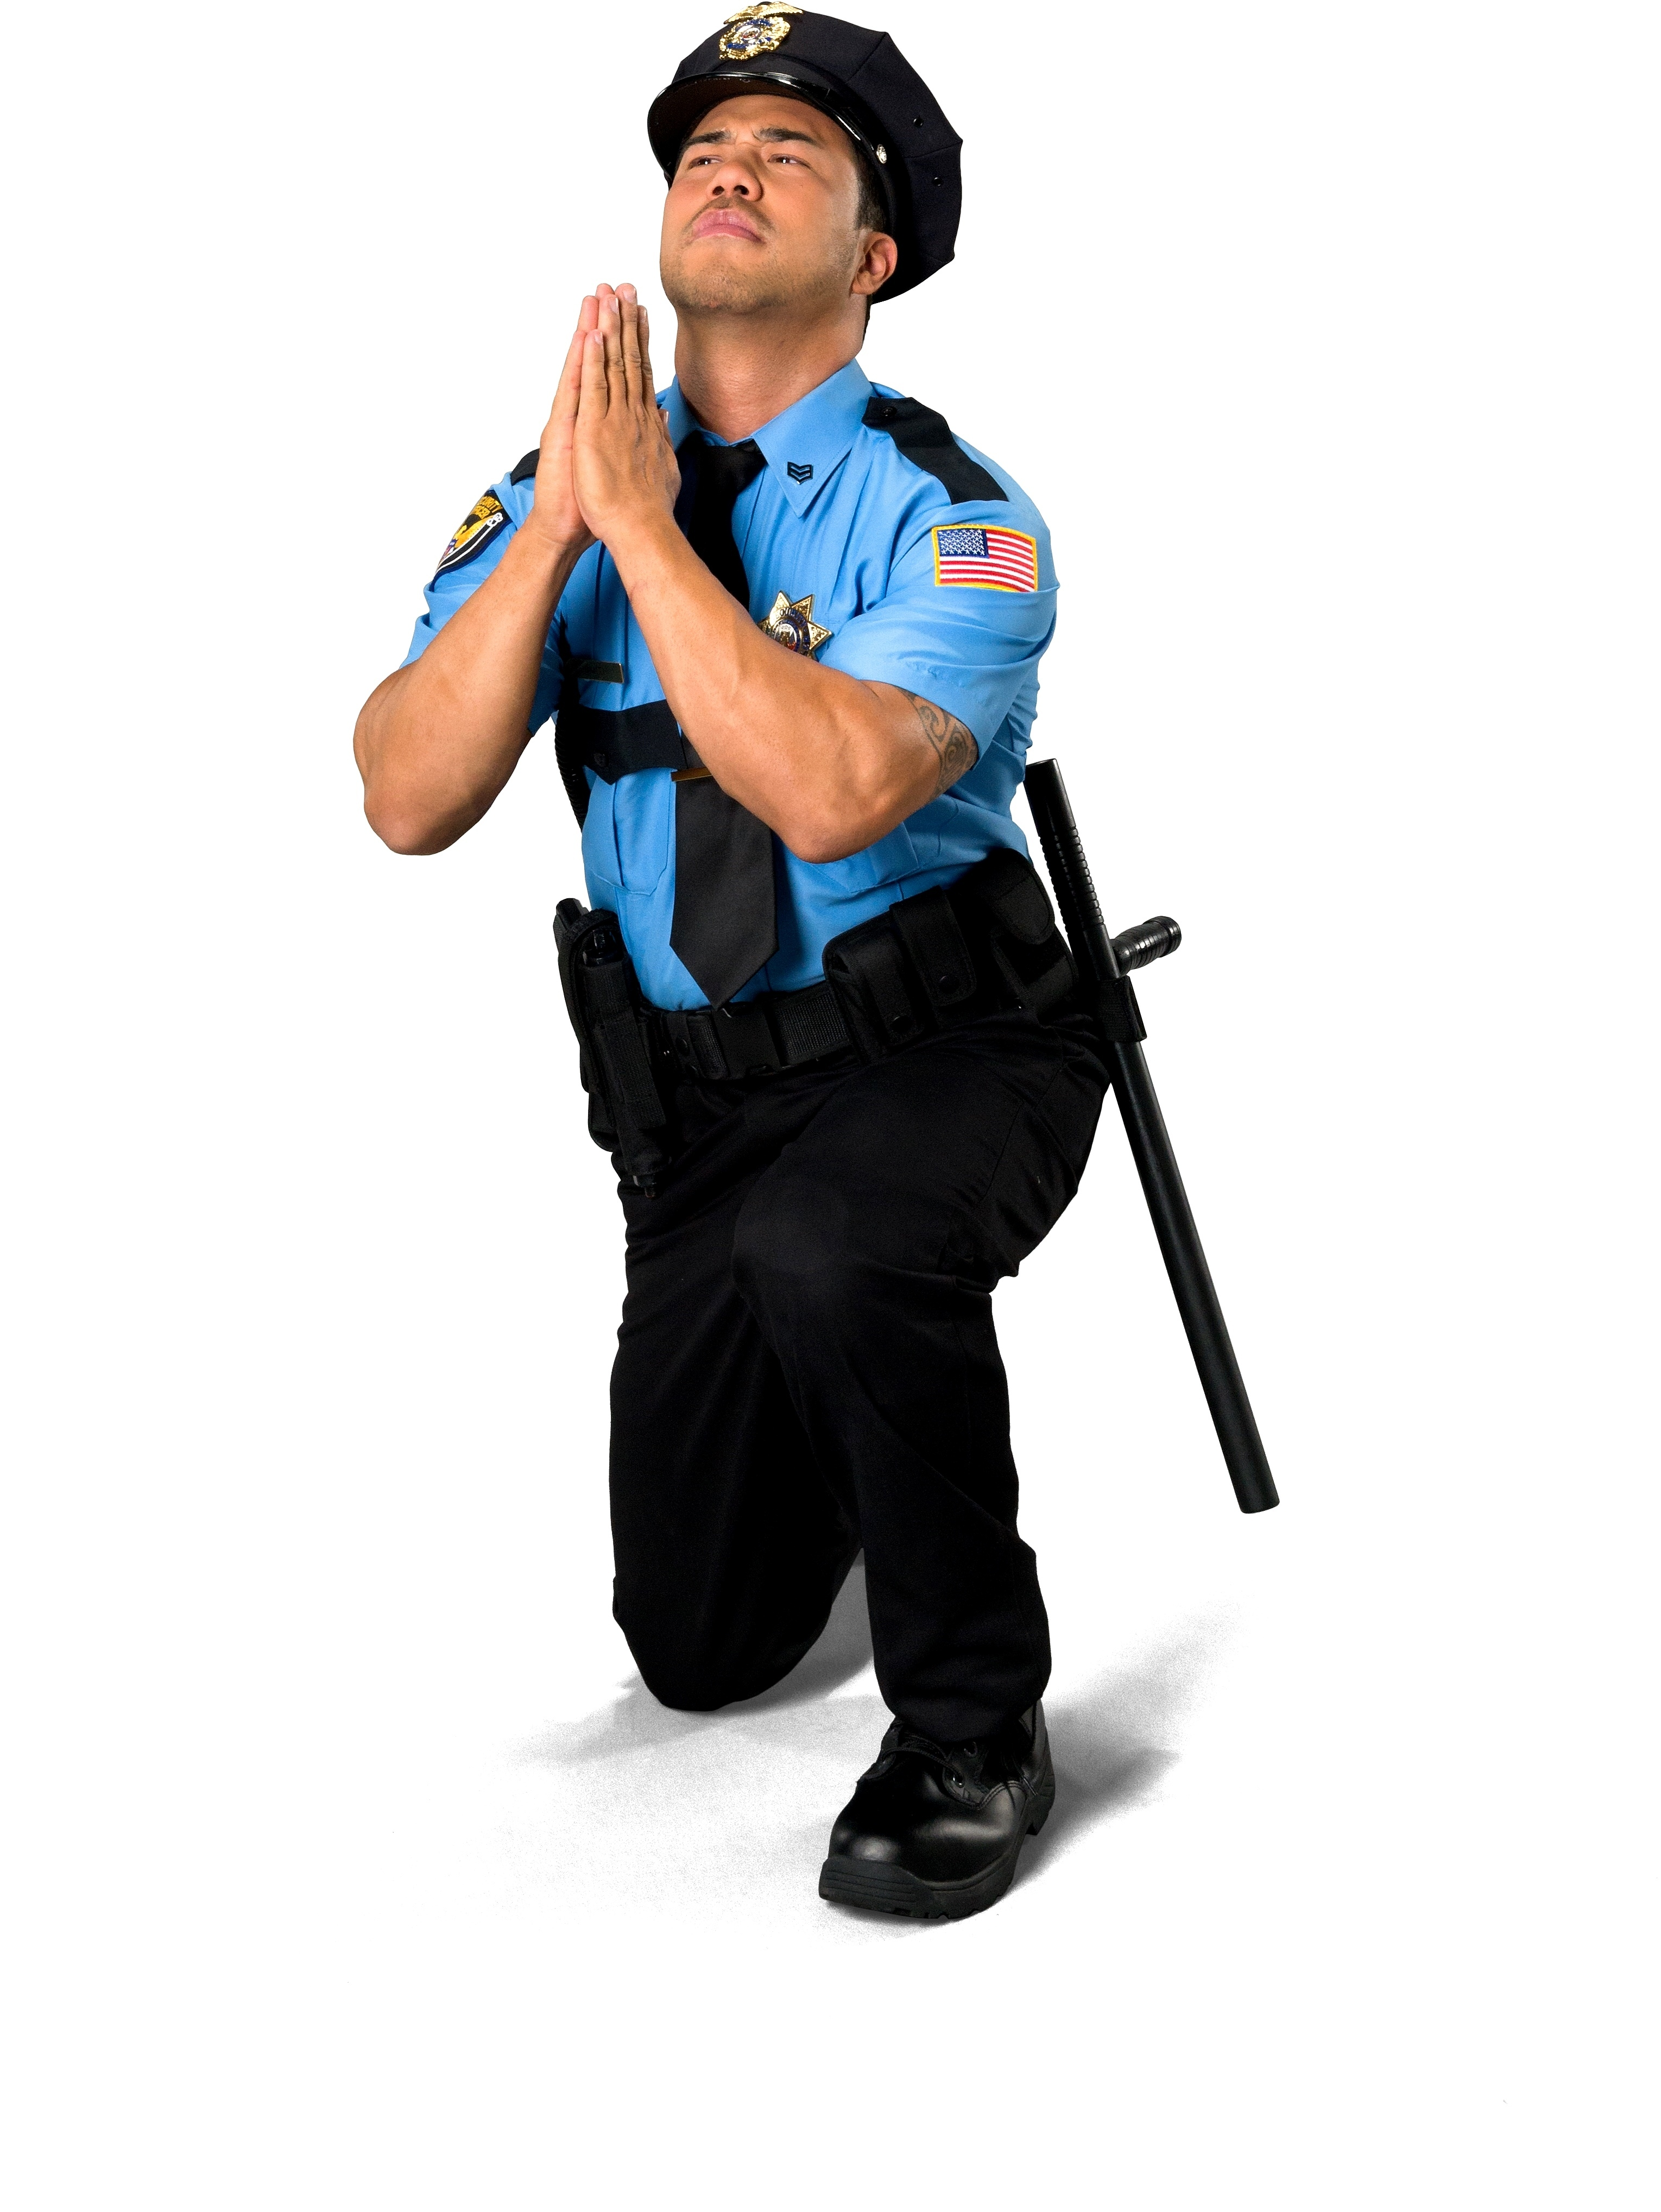 Sheriff Allen should consider spending less time in this pose and more time protecting all citizens, including atheists. LifetimeStock/Shuttestock.com